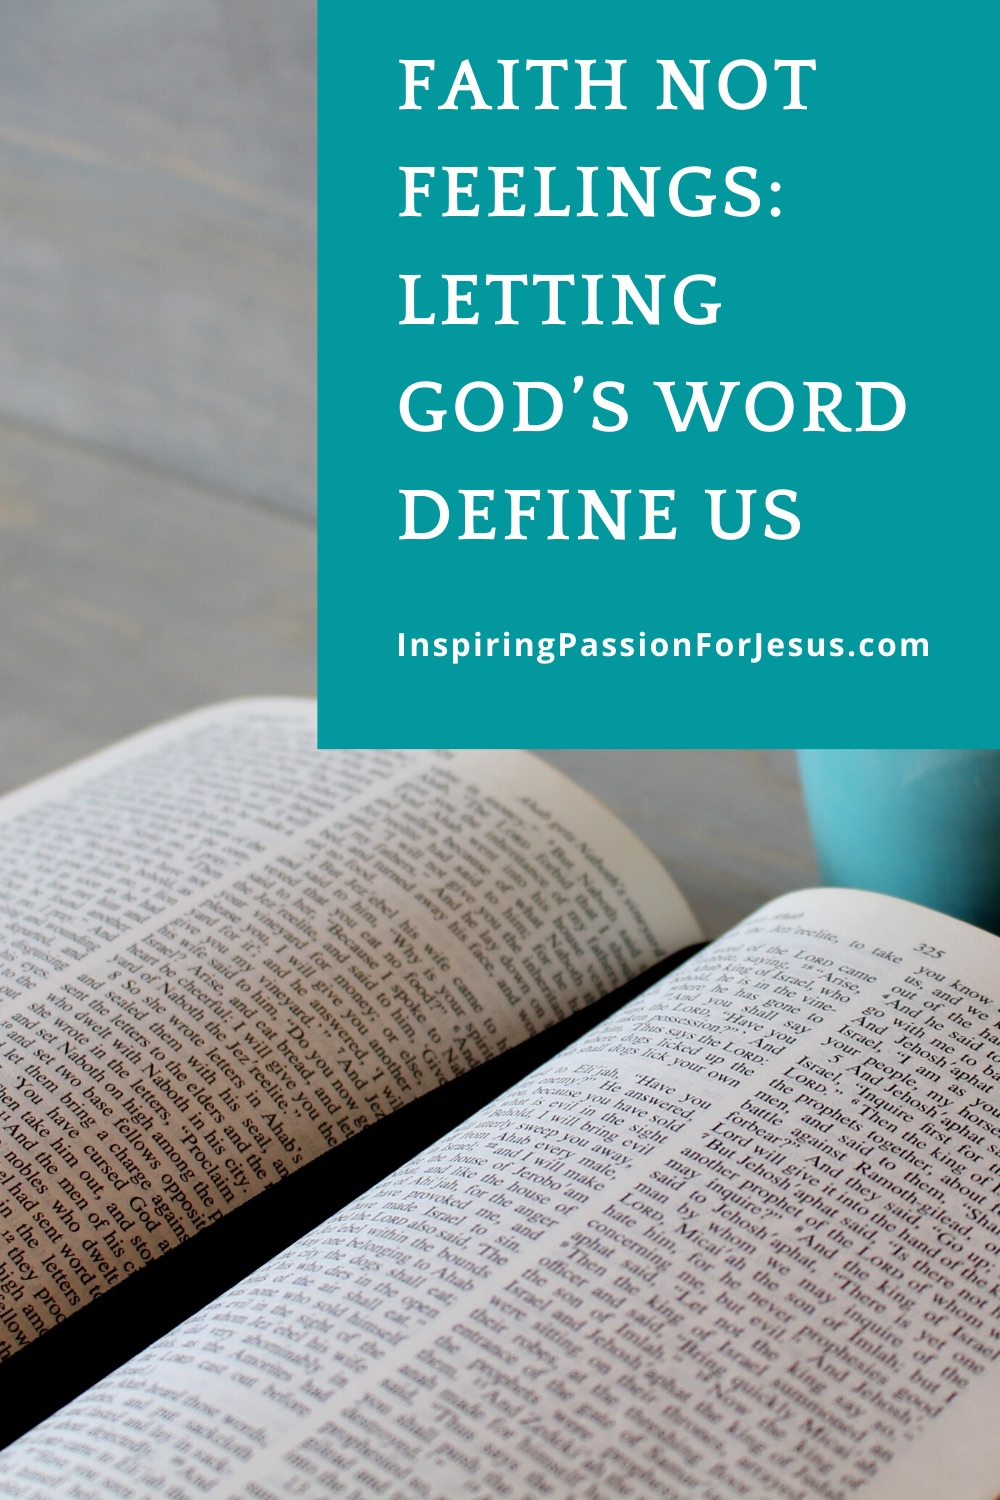 Faith Not Feelings: Letting God's Word Define Us